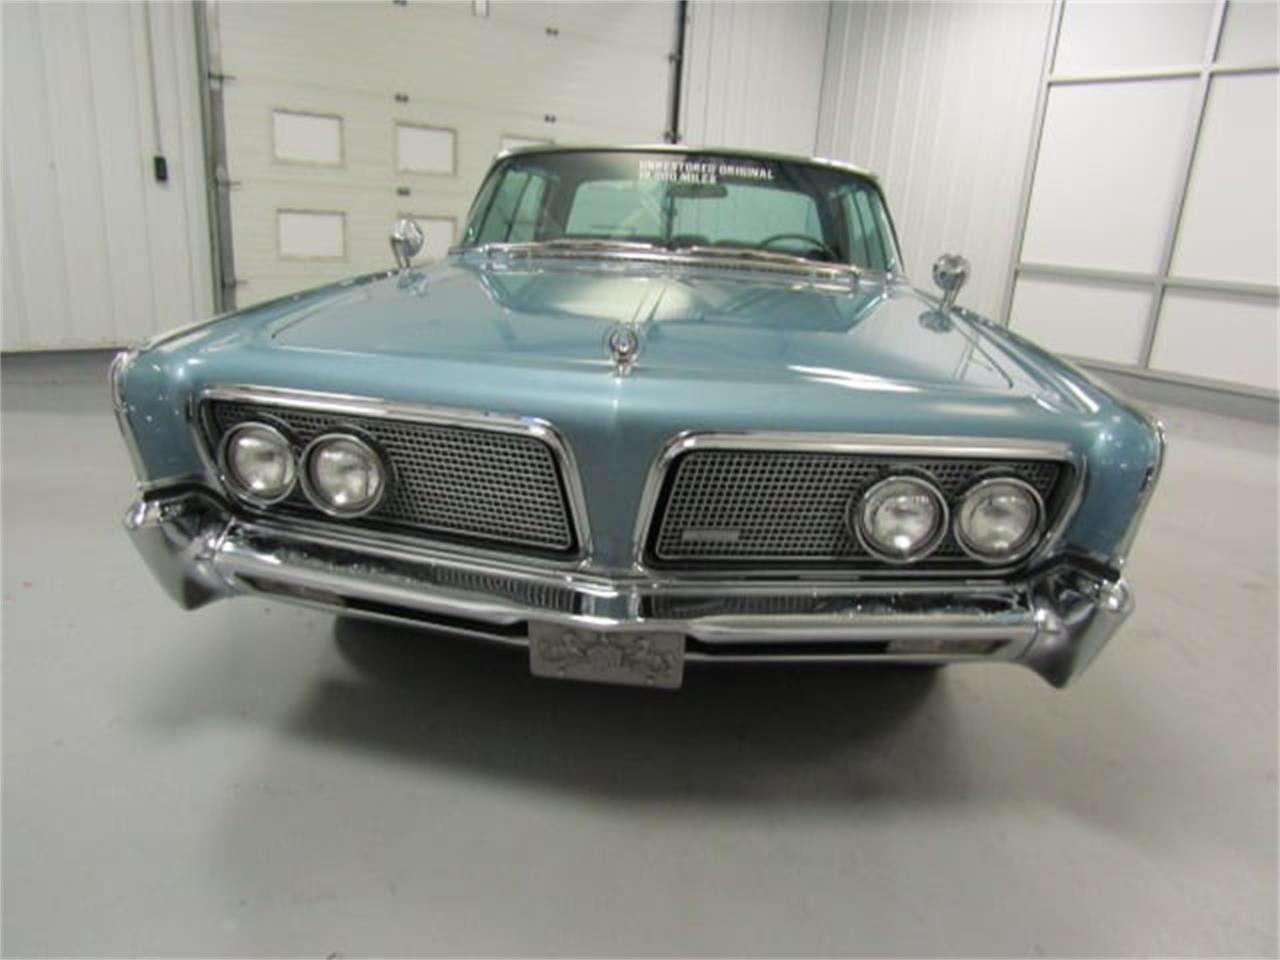 Large Picture of 1964 Chrysler Imperial located in Christiansburg Virginia Offered by Duncan Imports & Classic Cars - JLDR